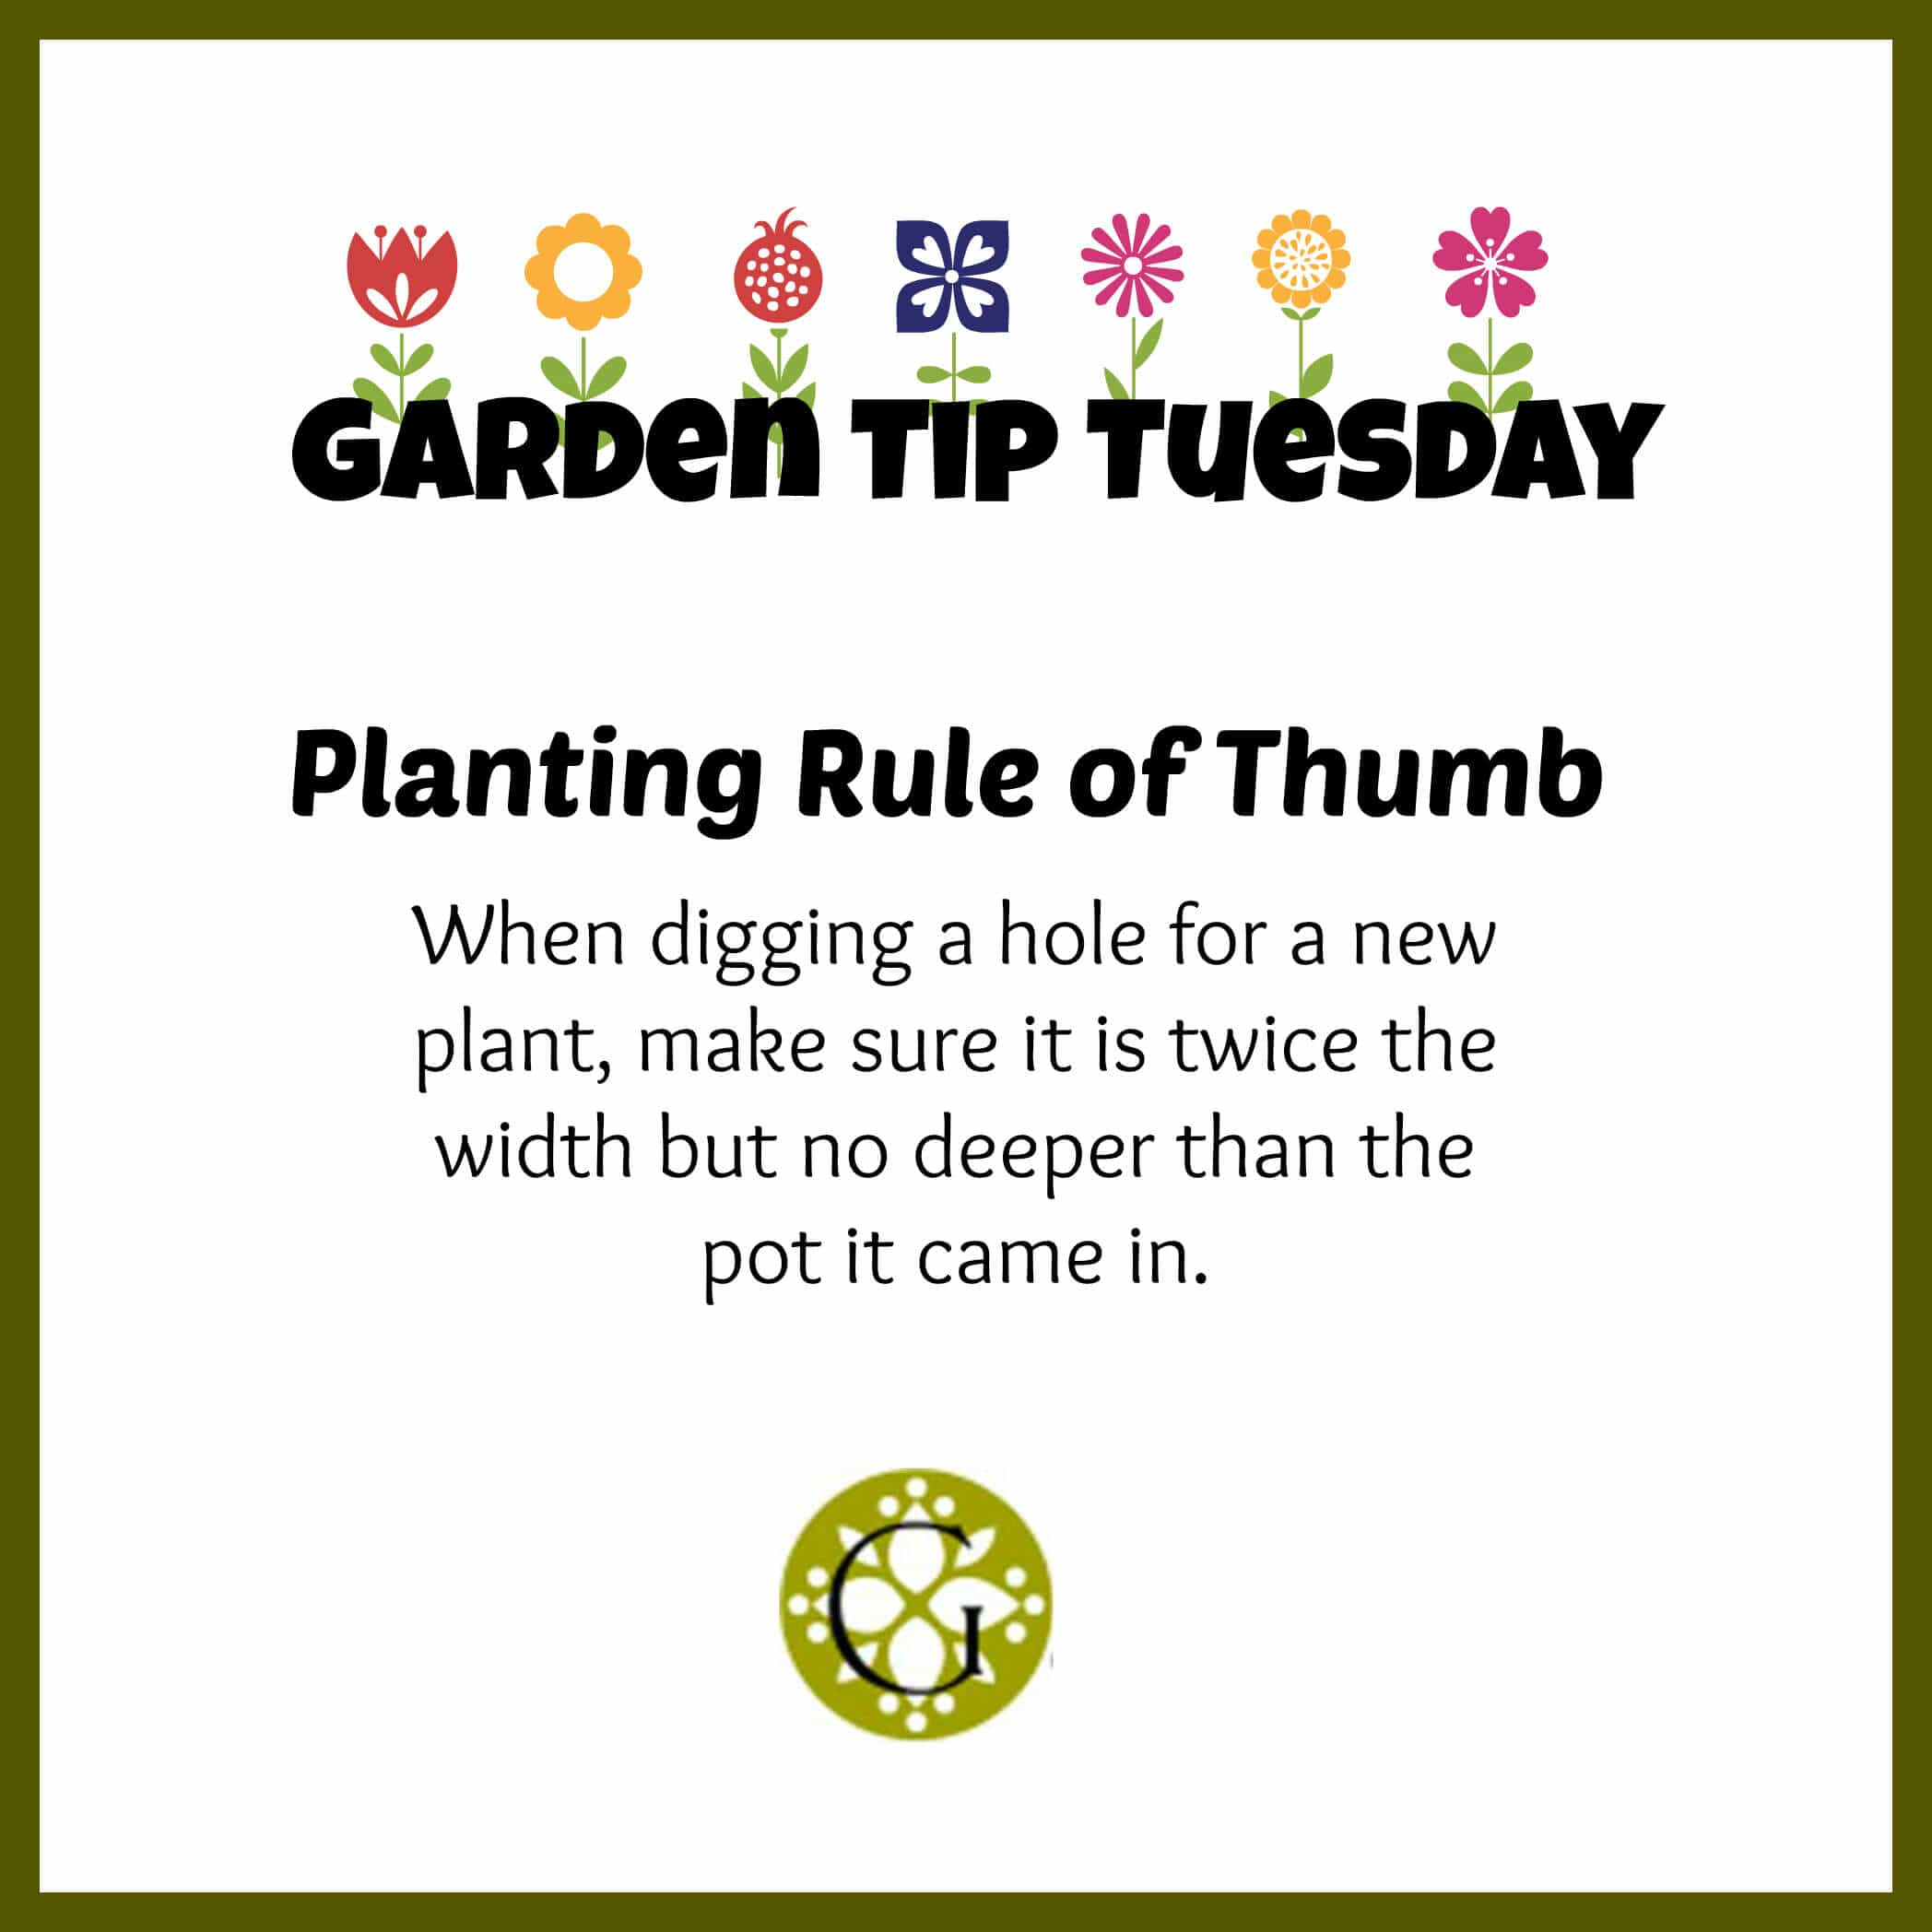 Planting Rule of Thumb